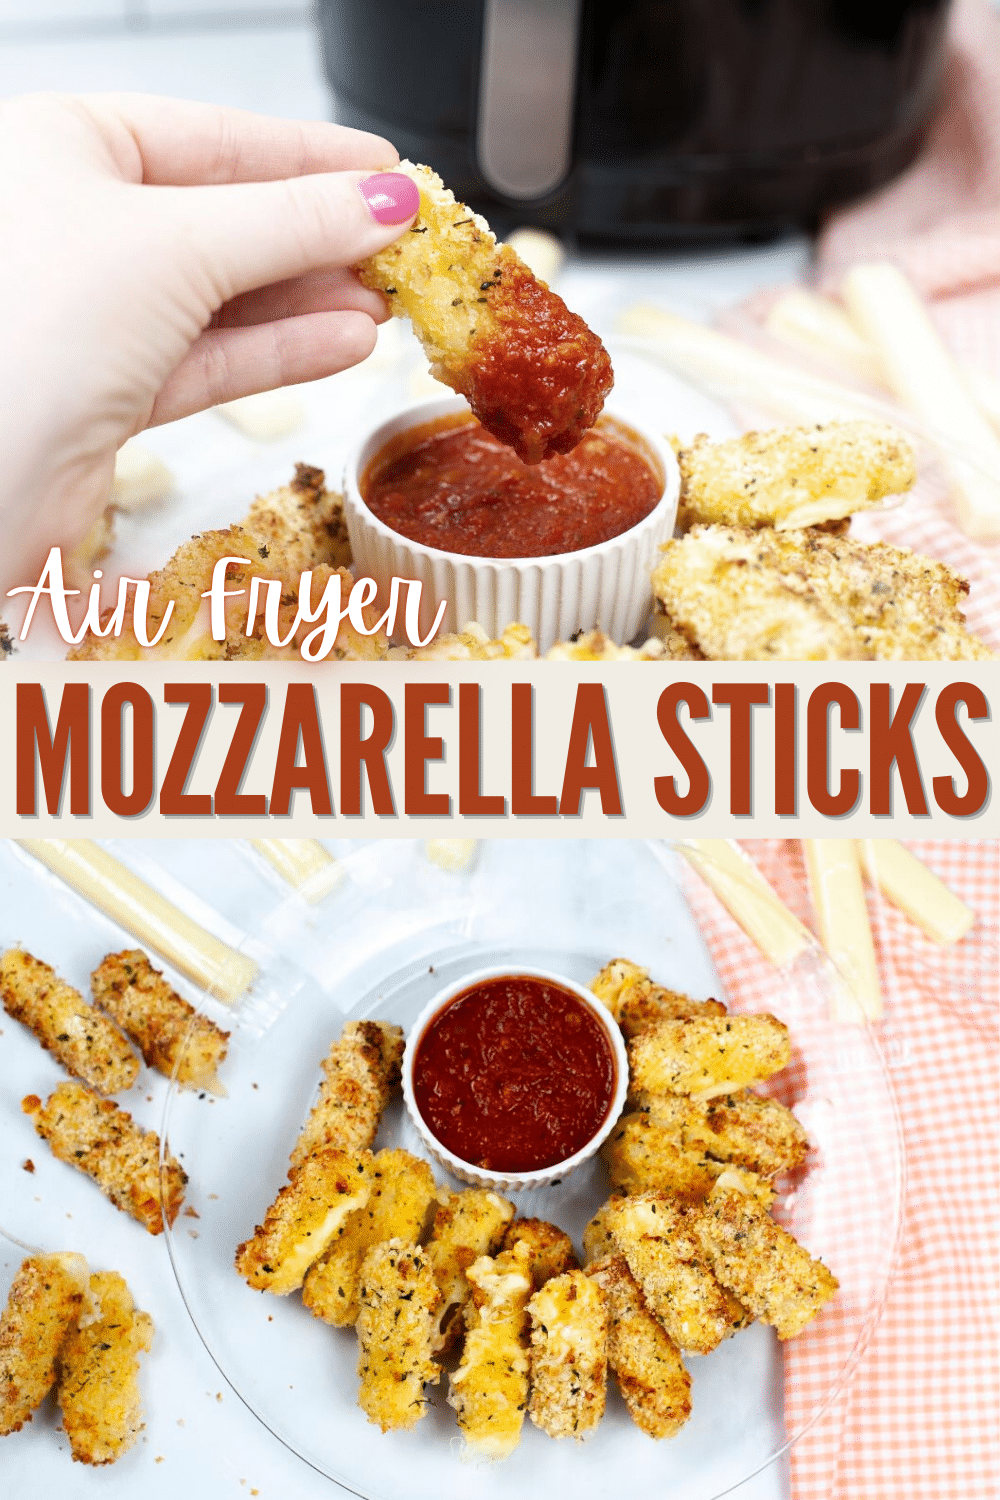 These homemade Air Fryer Mozzarella Sticks are so much better than frozen ones from the store. They're crispy outside & cheesy inside. #mozzarellasticks #homemade #airfryer #appetizers #recipe via @wondermomwannab